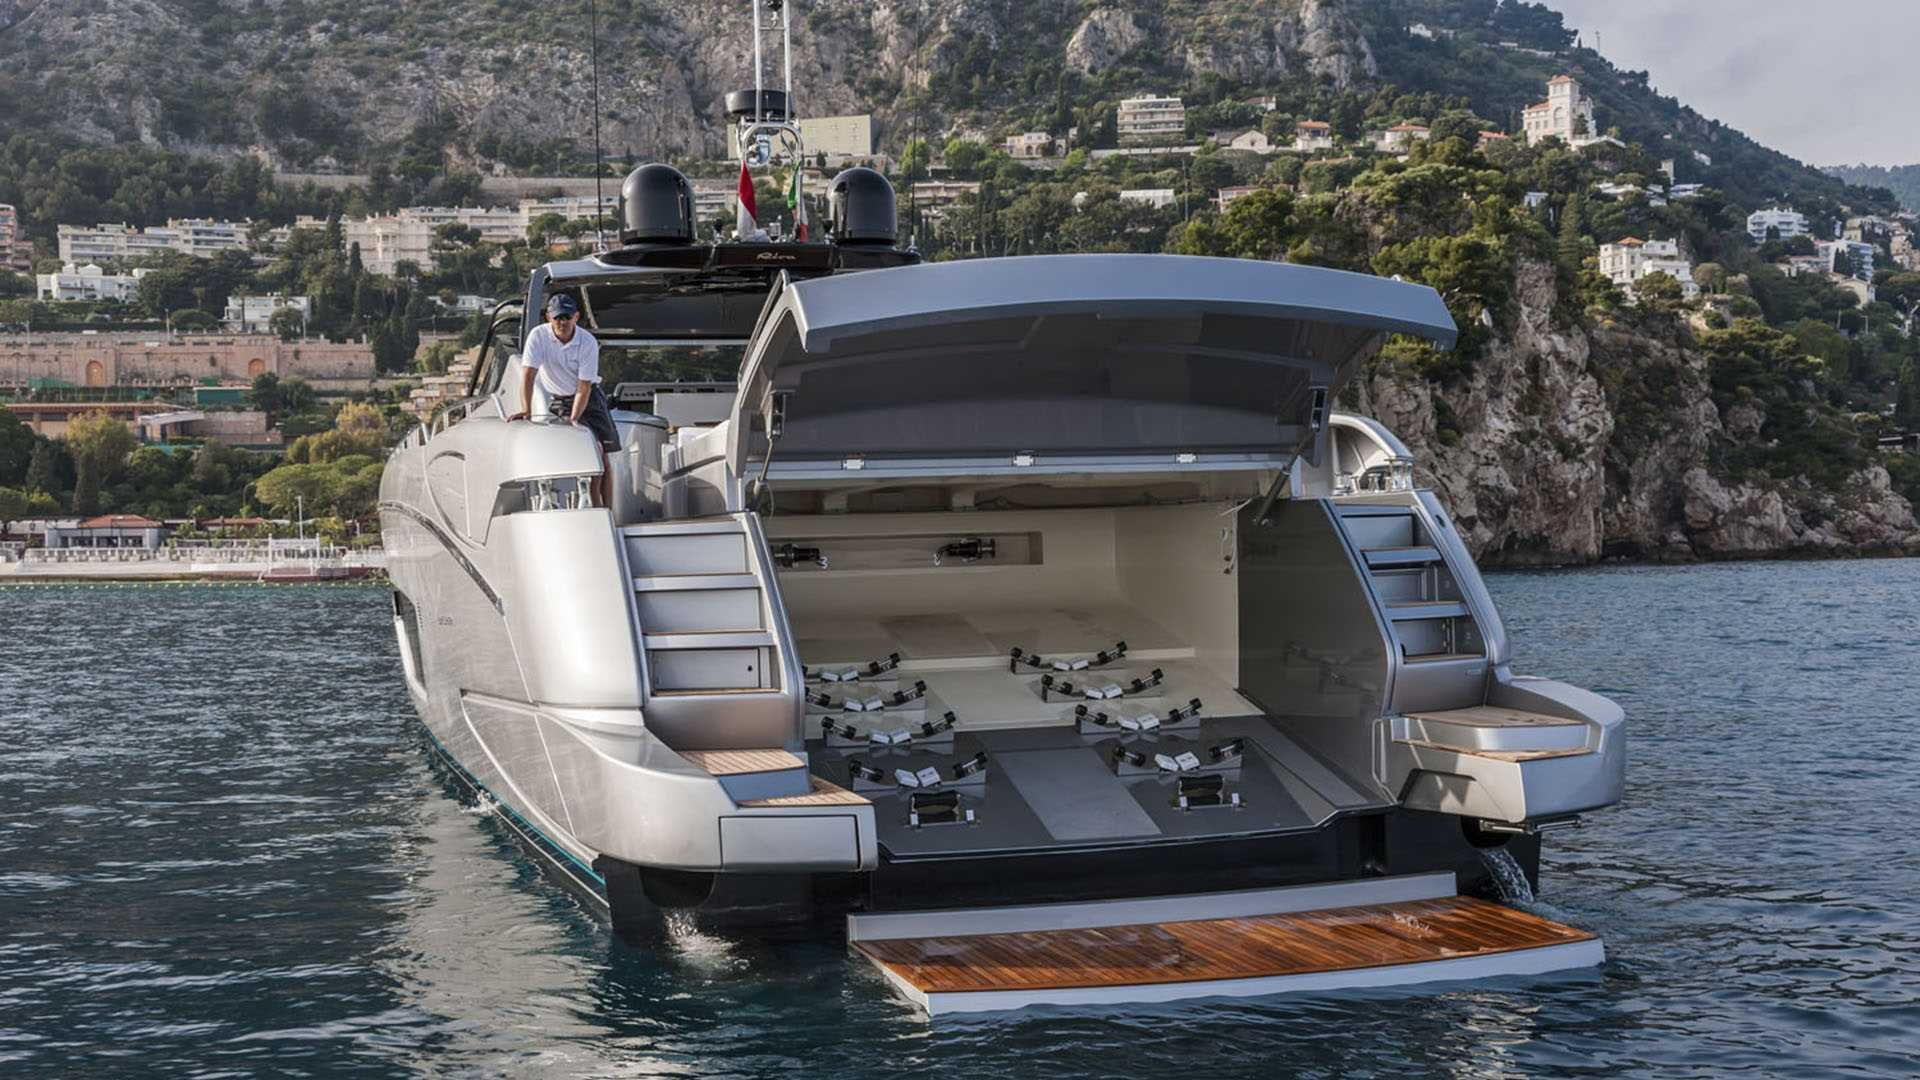 Startpage By Ixquick Search Engine Yacht Design Luxury Yachts Boats Luxury